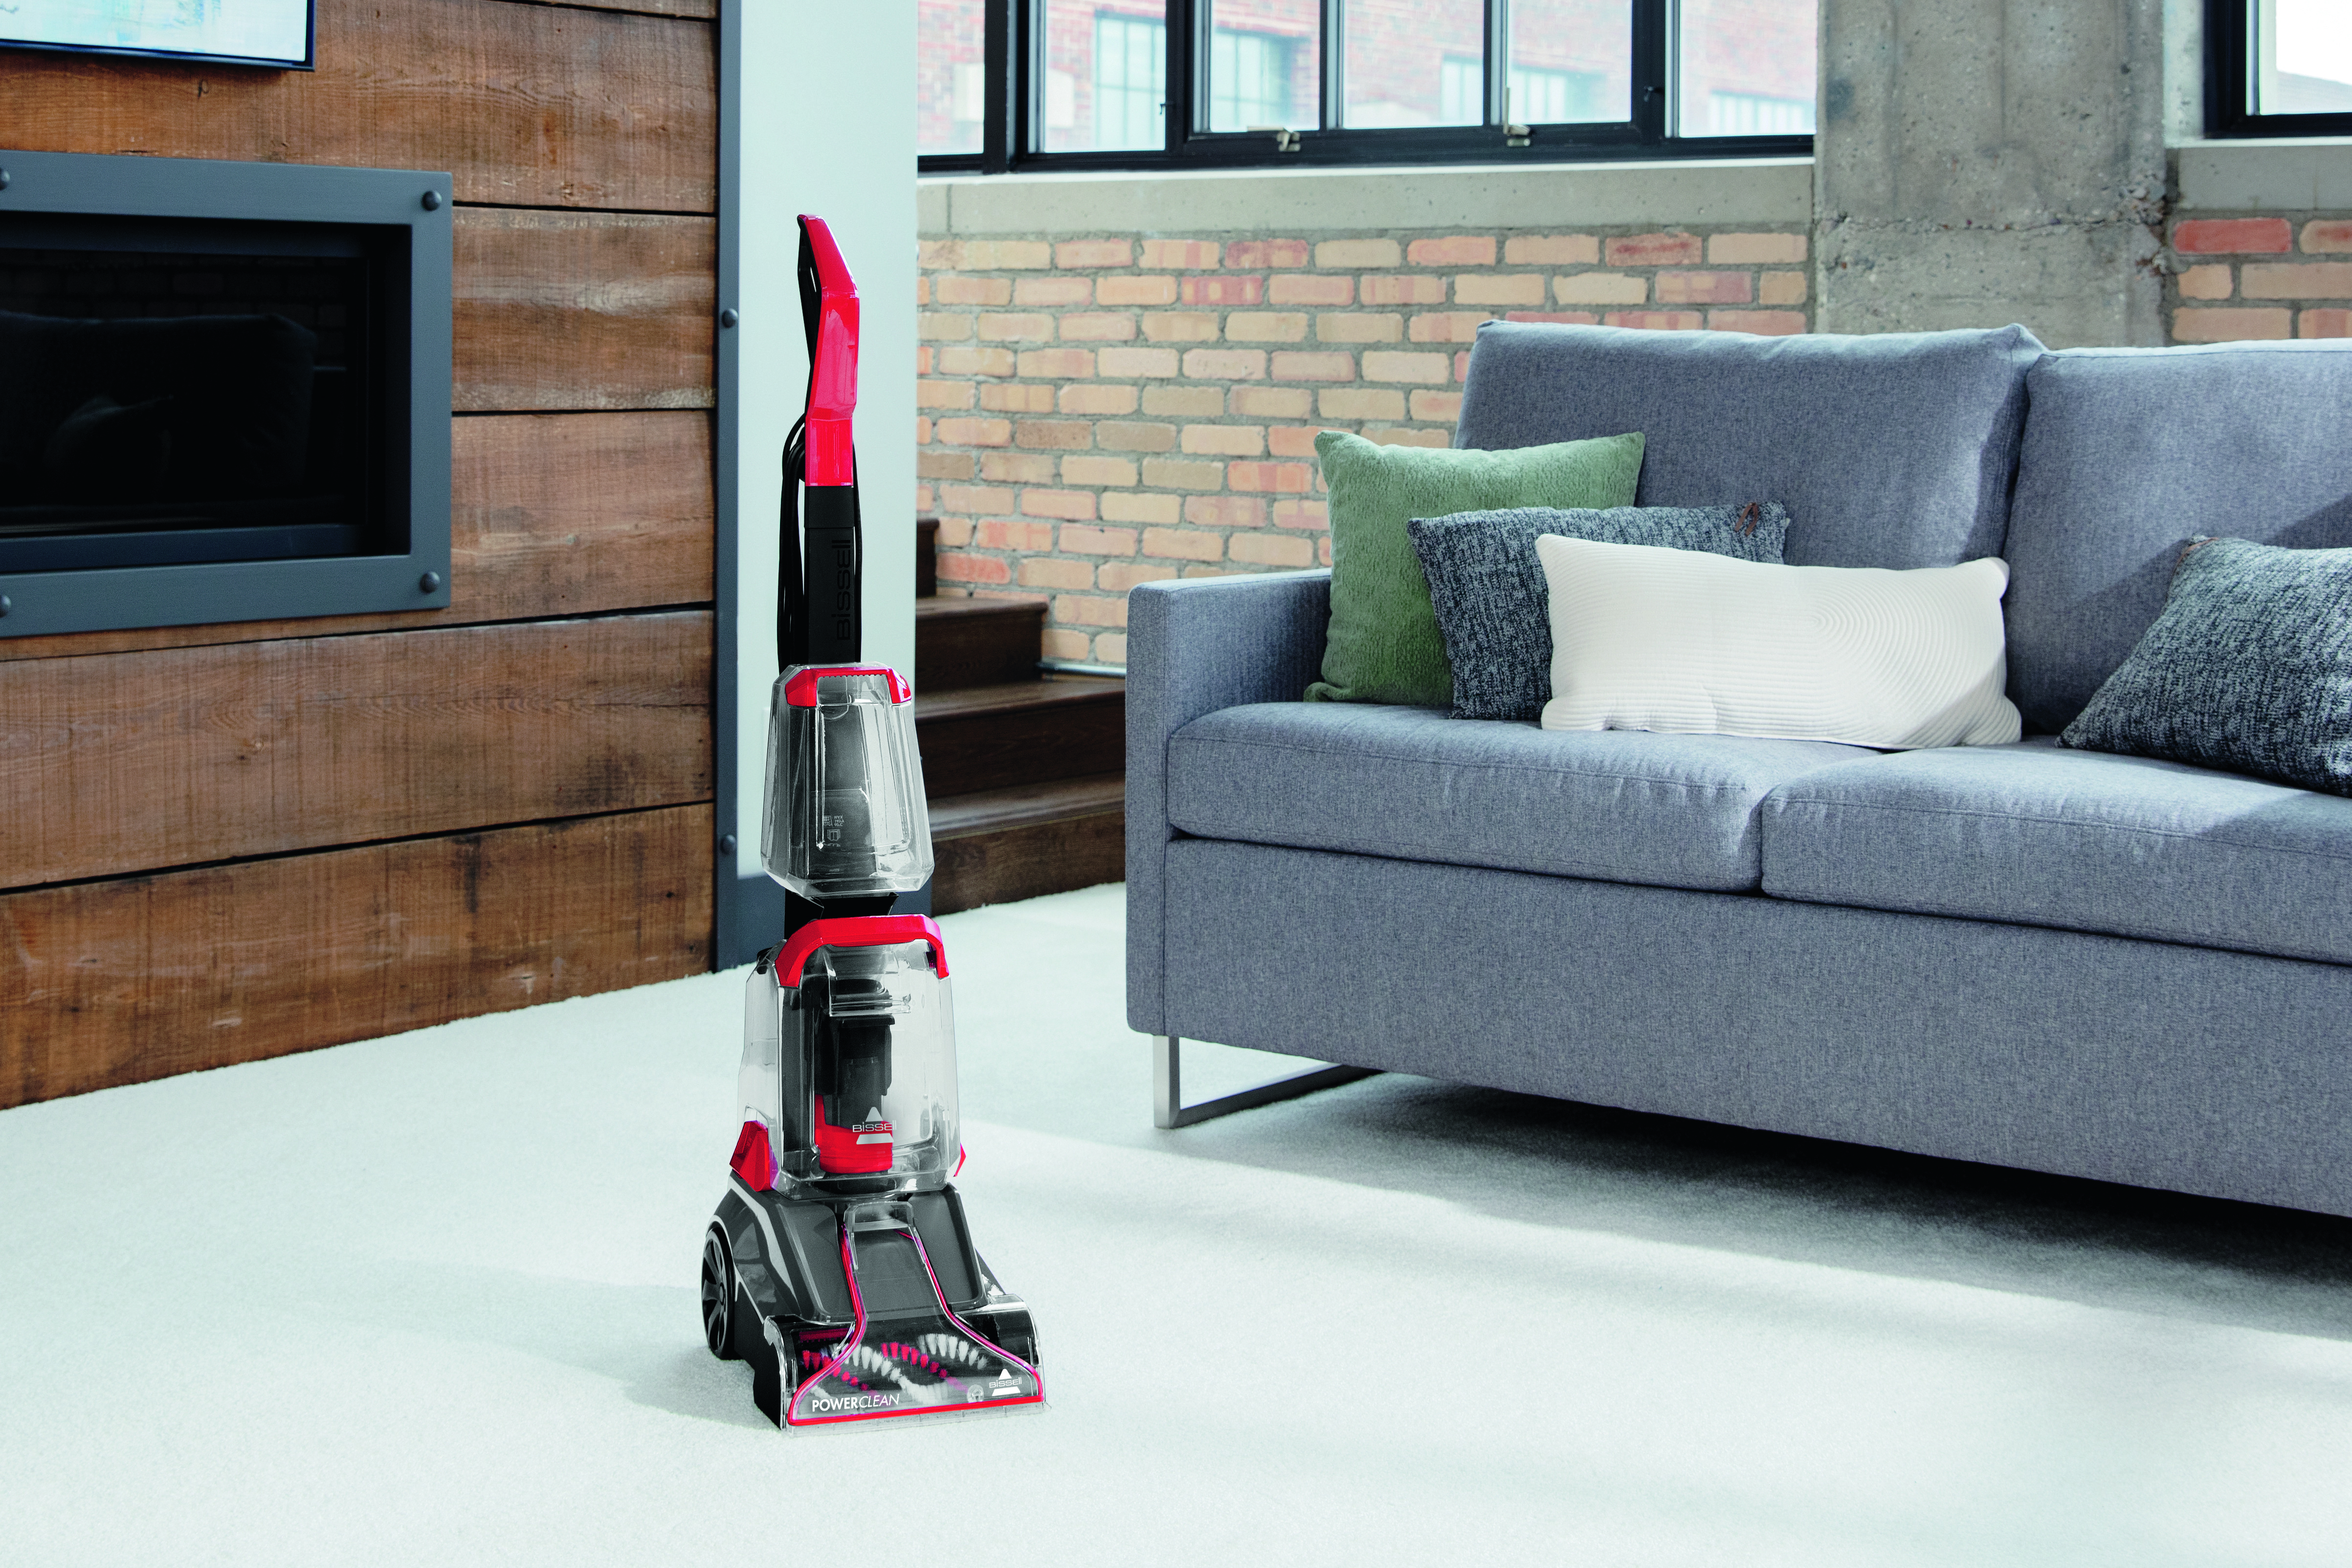 BISSELL PowerClean Carpet Washer